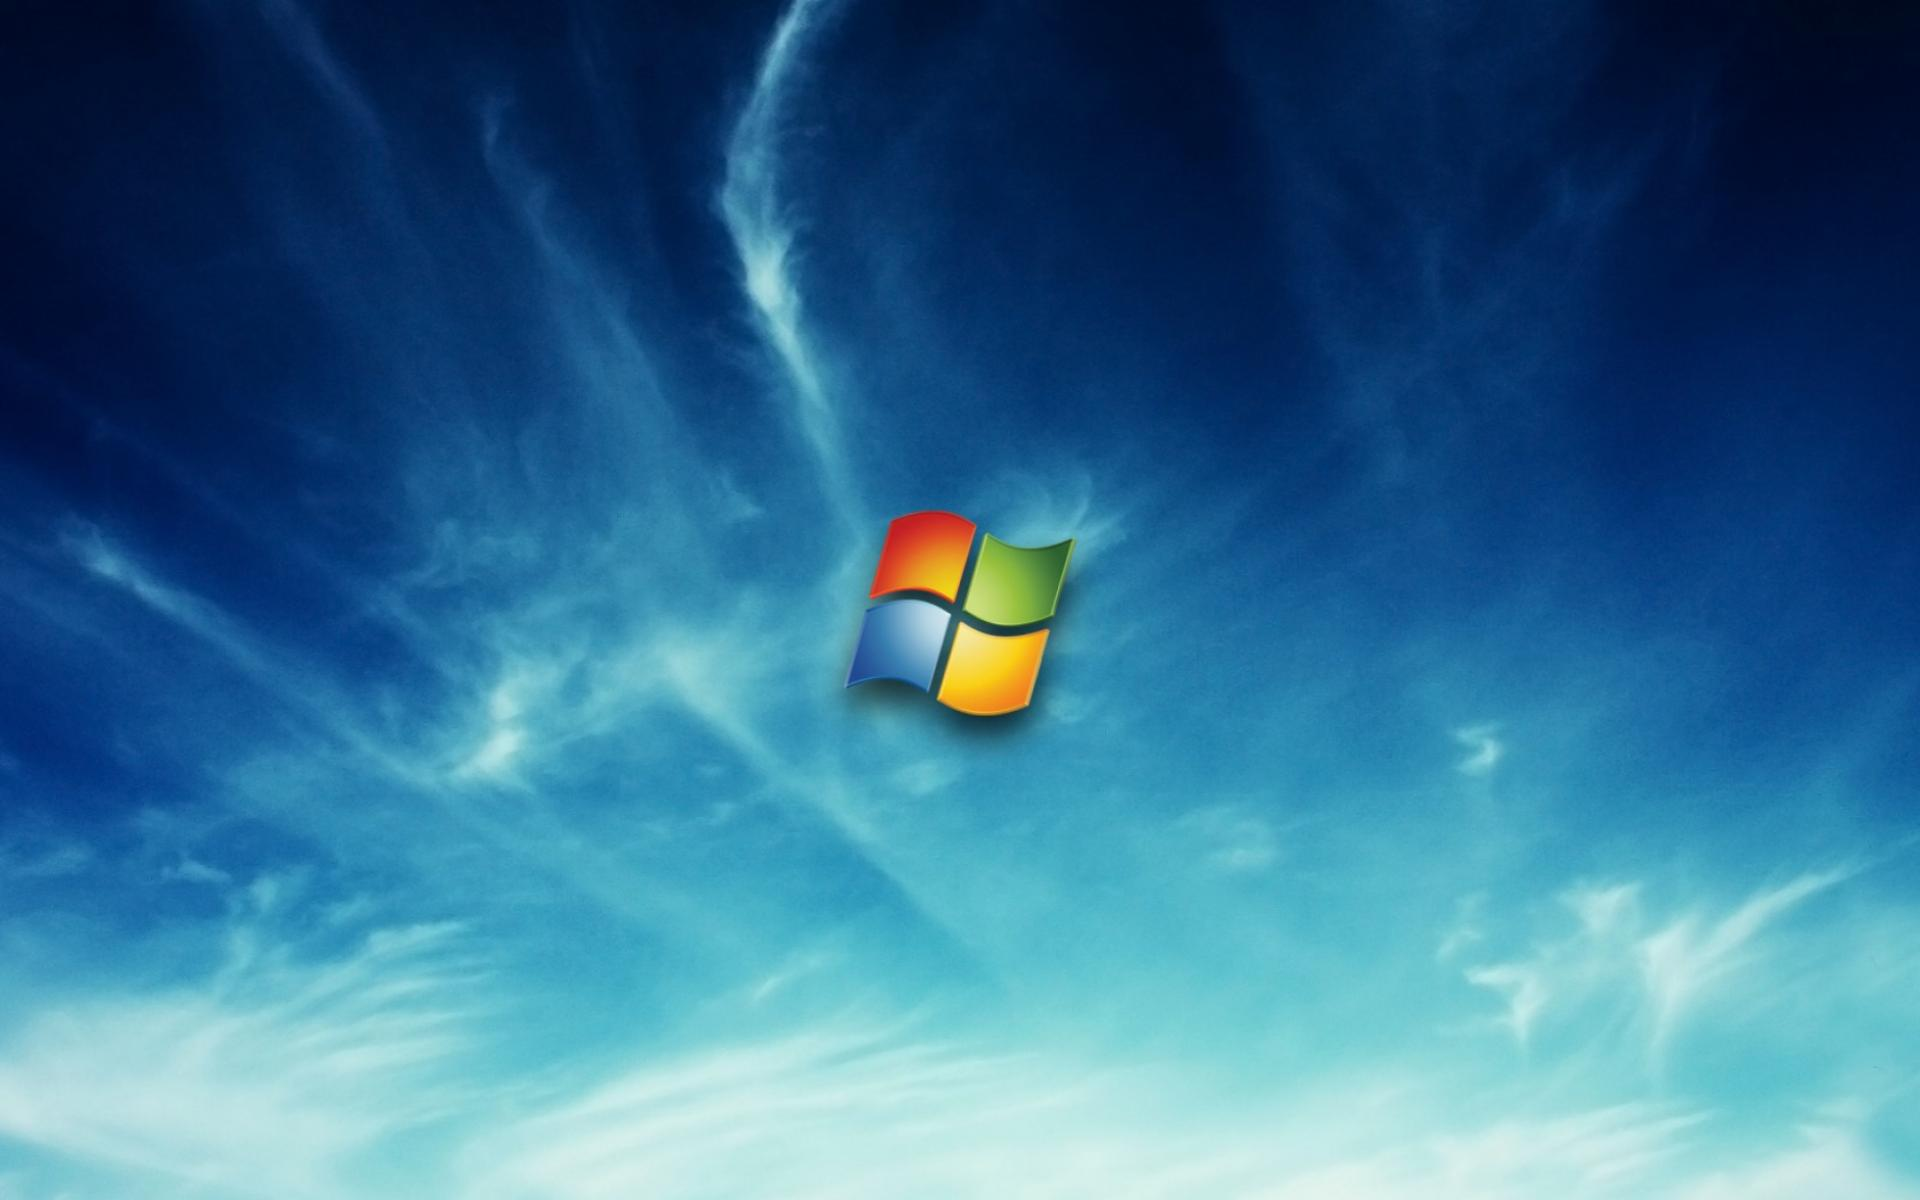 Обои Windows Sky 1920x1200